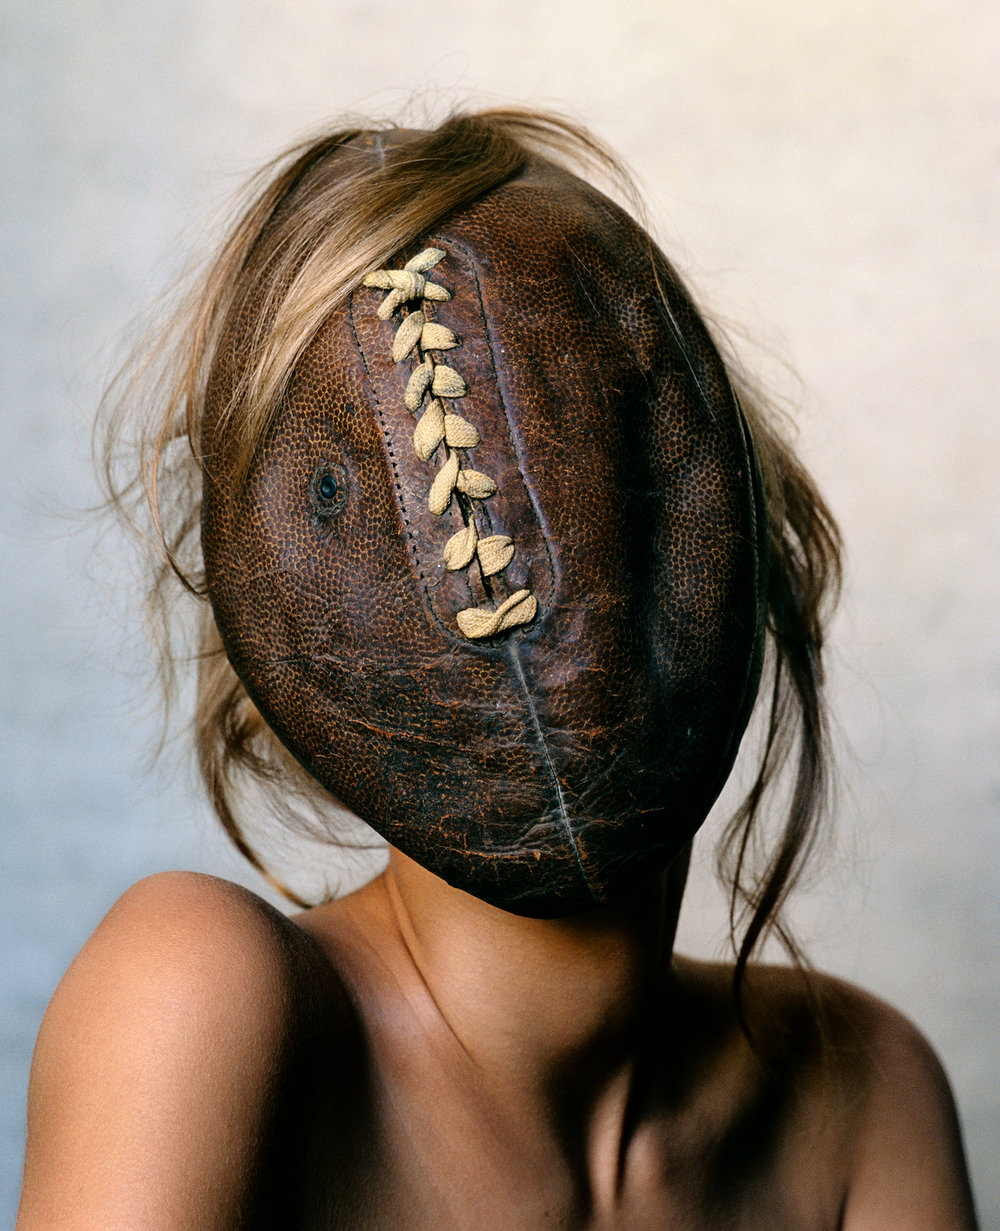 Football Face , New York, 2002 Chromogenic print © Condé Nast